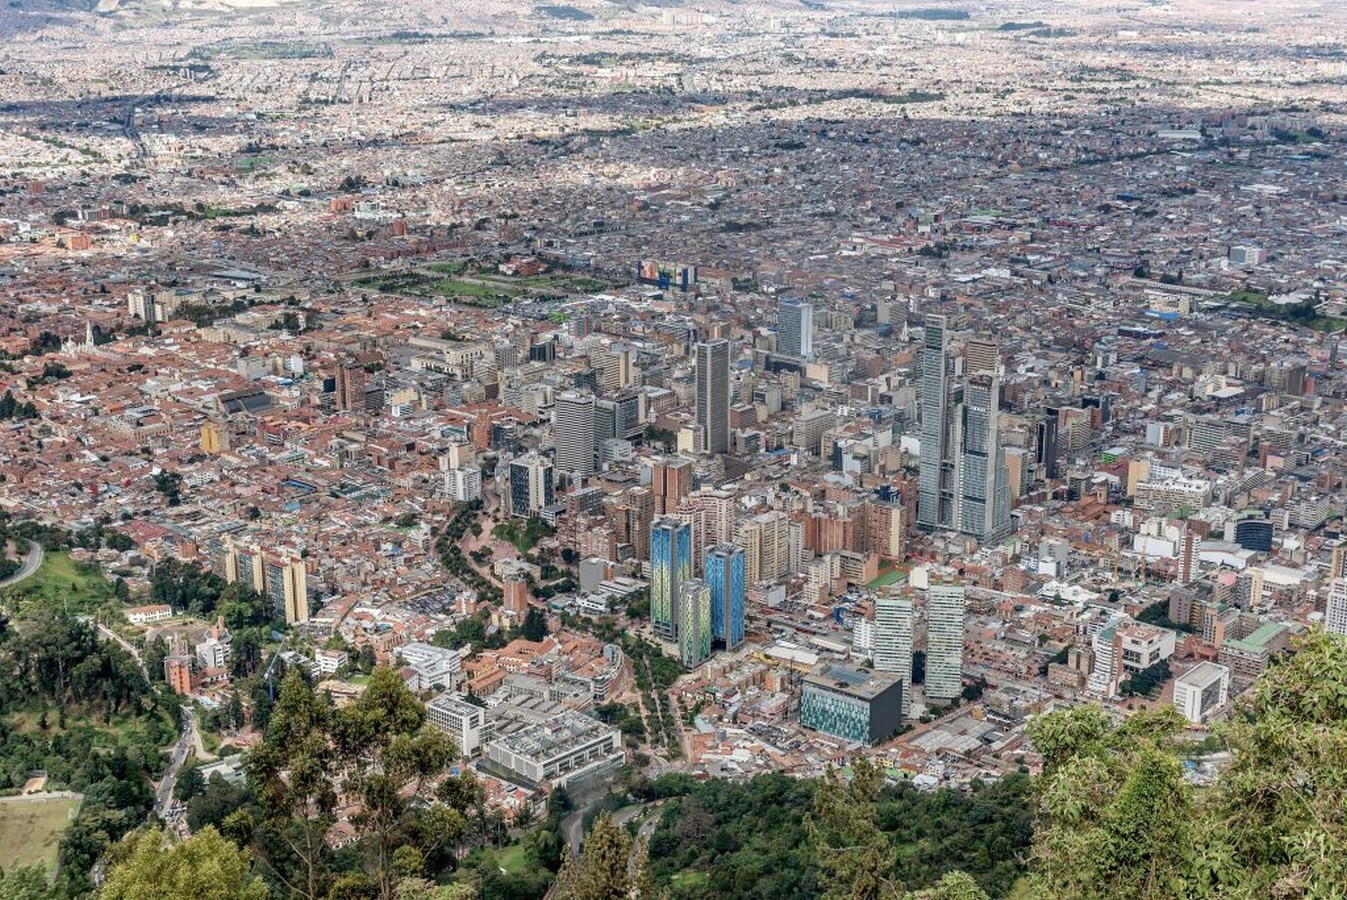 15 Places to visit in Bogotá for the Travelling Architect - Sheet1